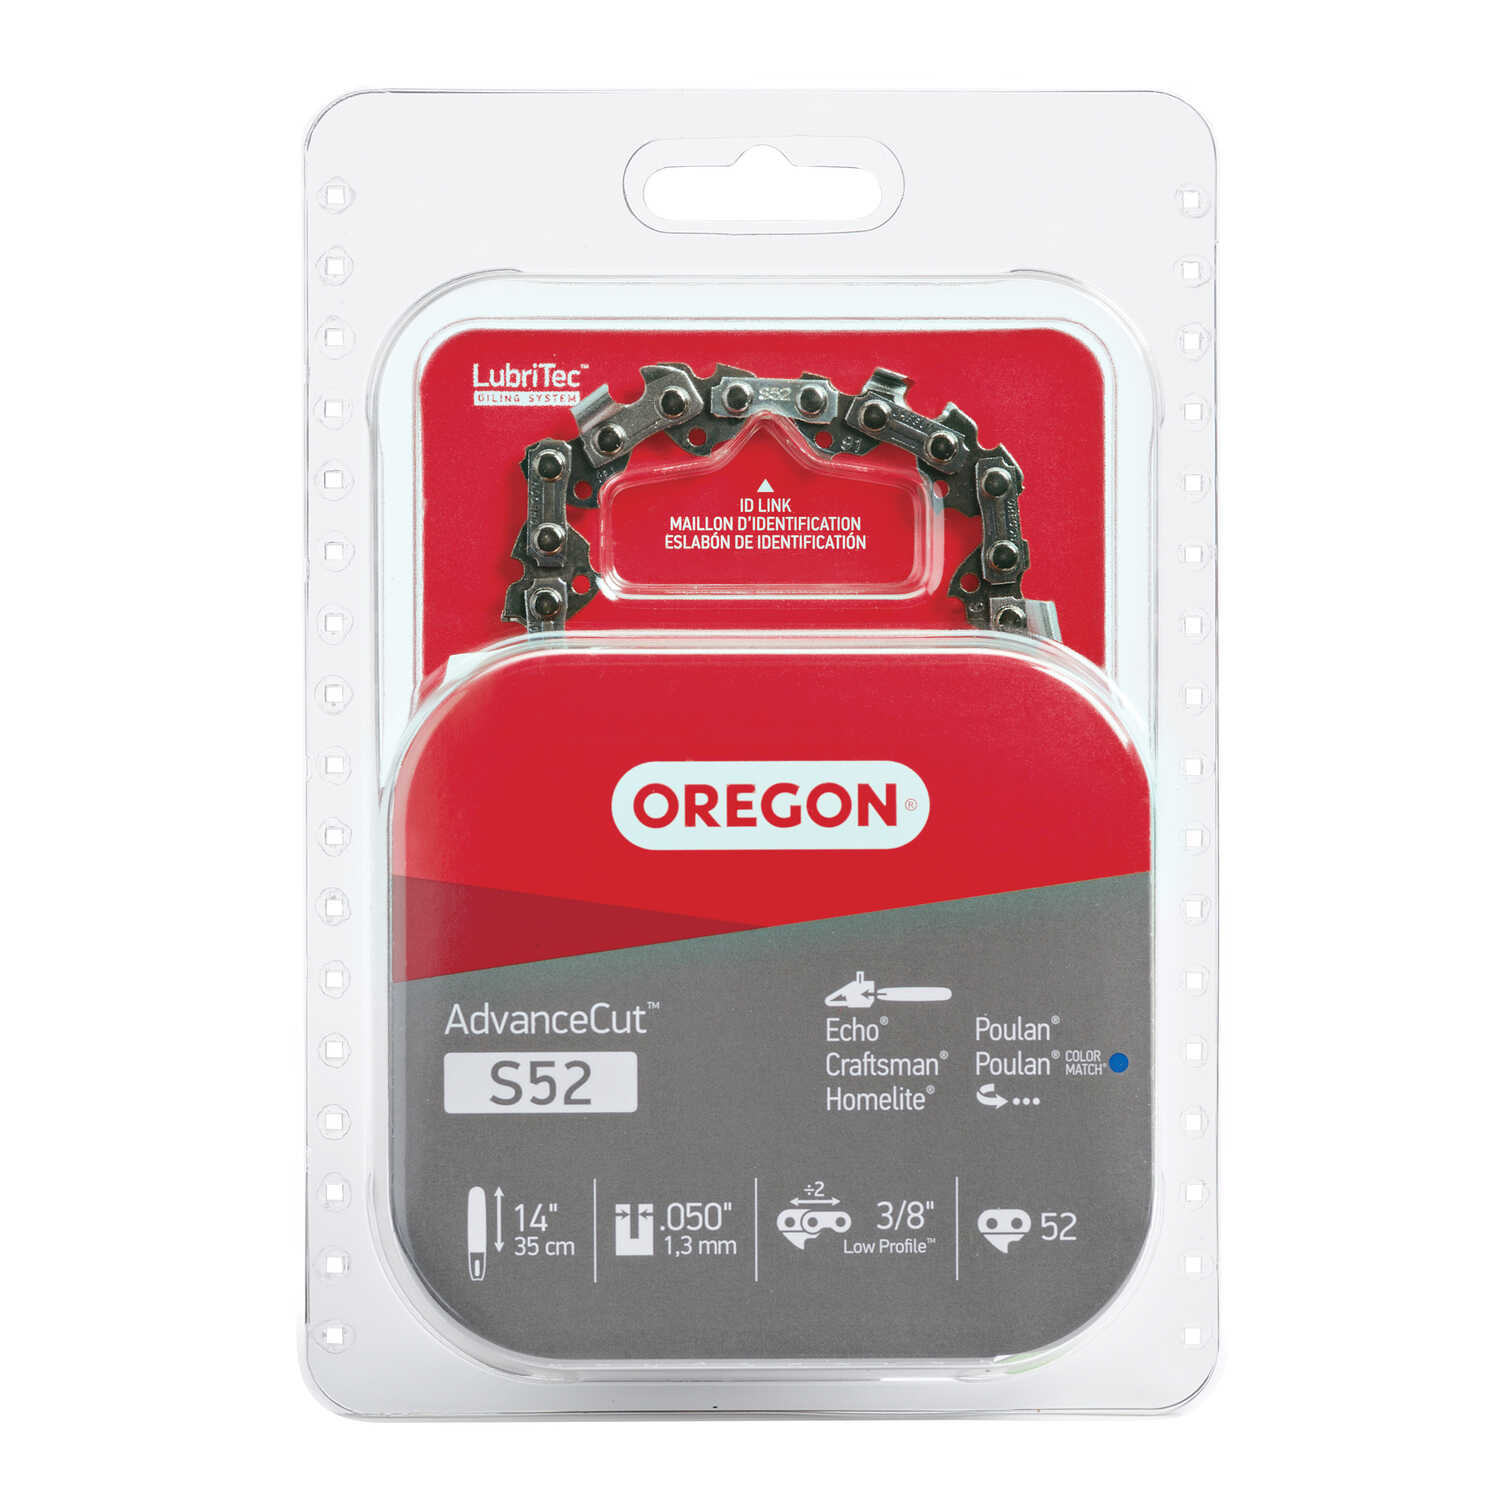 Oregon Advance Cut 14 in  52 links Chainsaw Chain - Ace Hardware